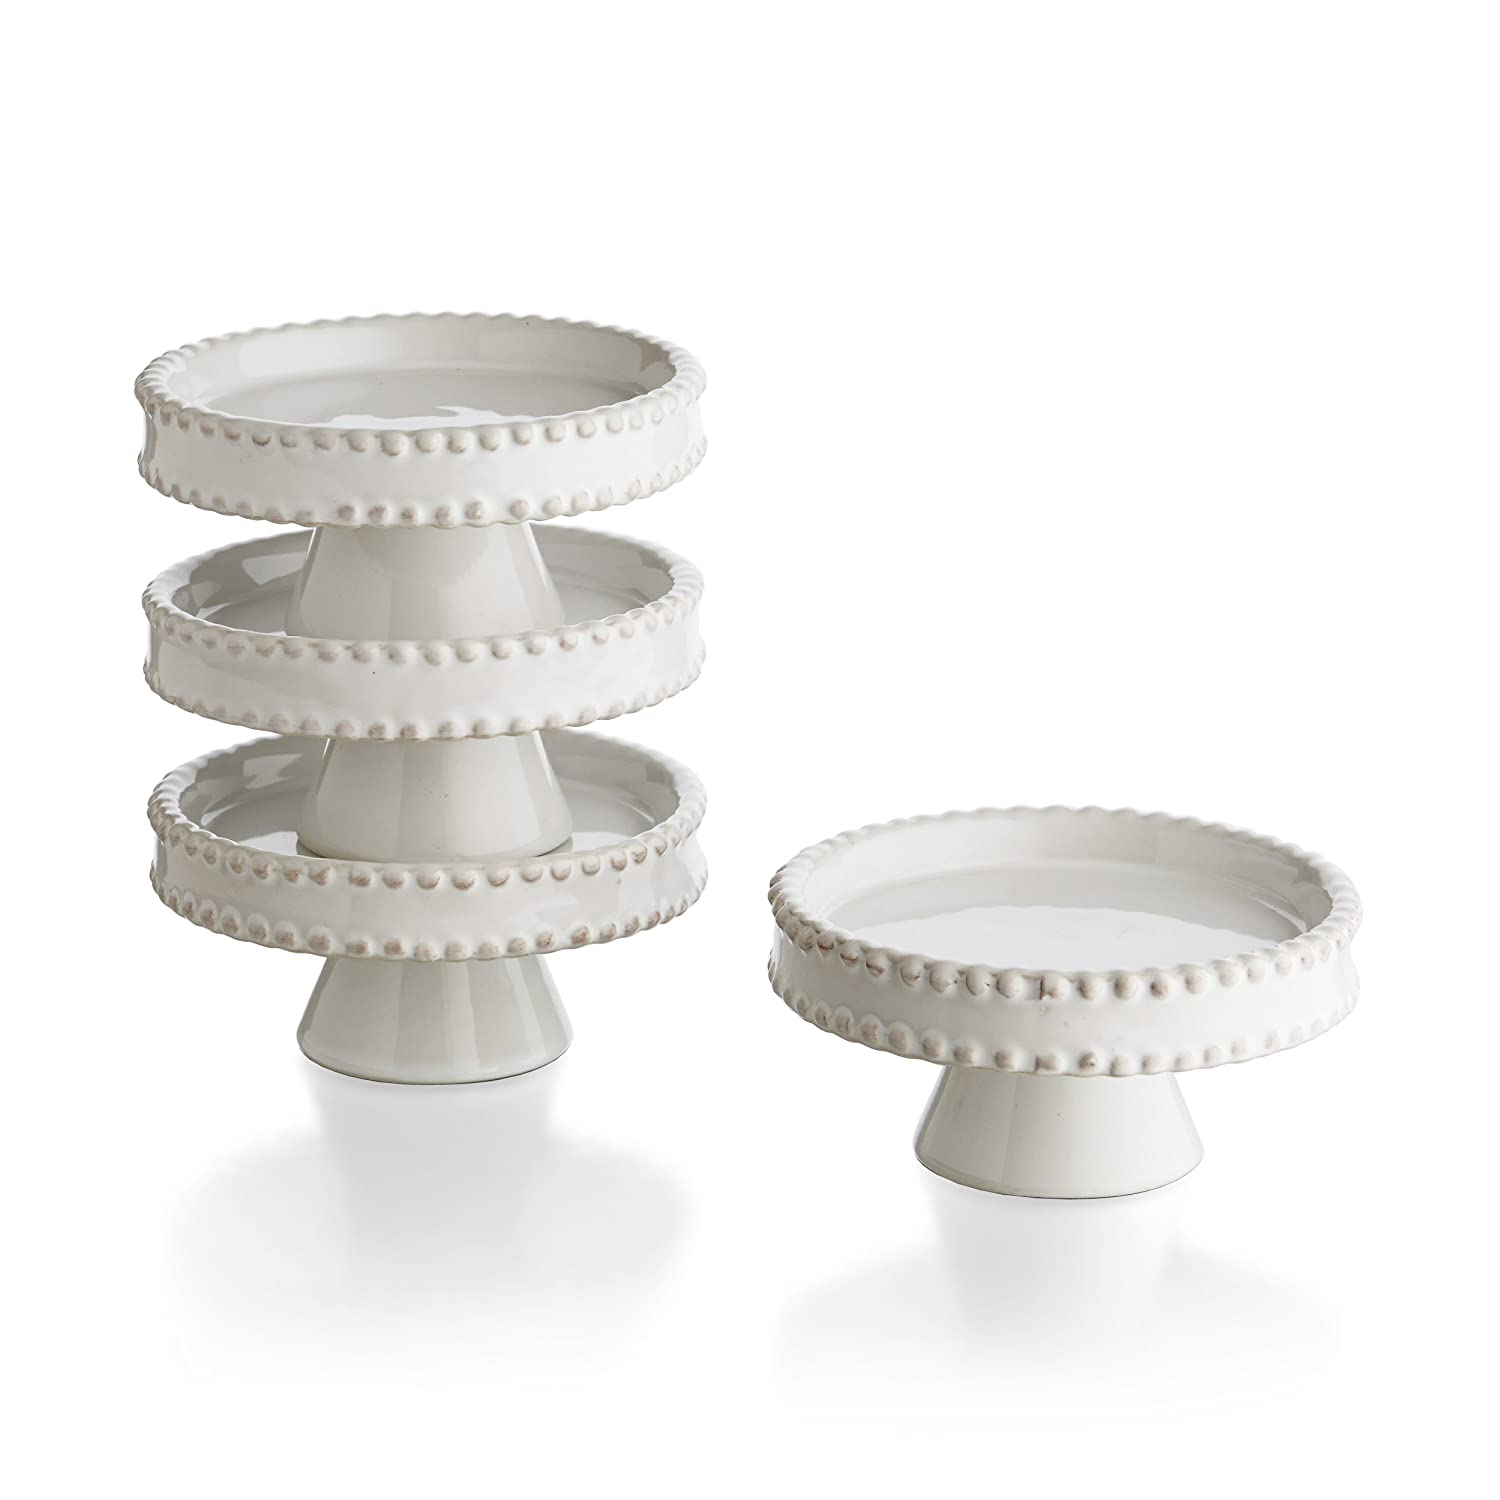 Amazon.com | American Atelier Bianca Bead Pedestal Cupcake Plates (Set of 4) White Accent Plates  sc 1 st  Amazon.com & Amazon.com | American Atelier Bianca Bead Pedestal Cupcake Plates ...